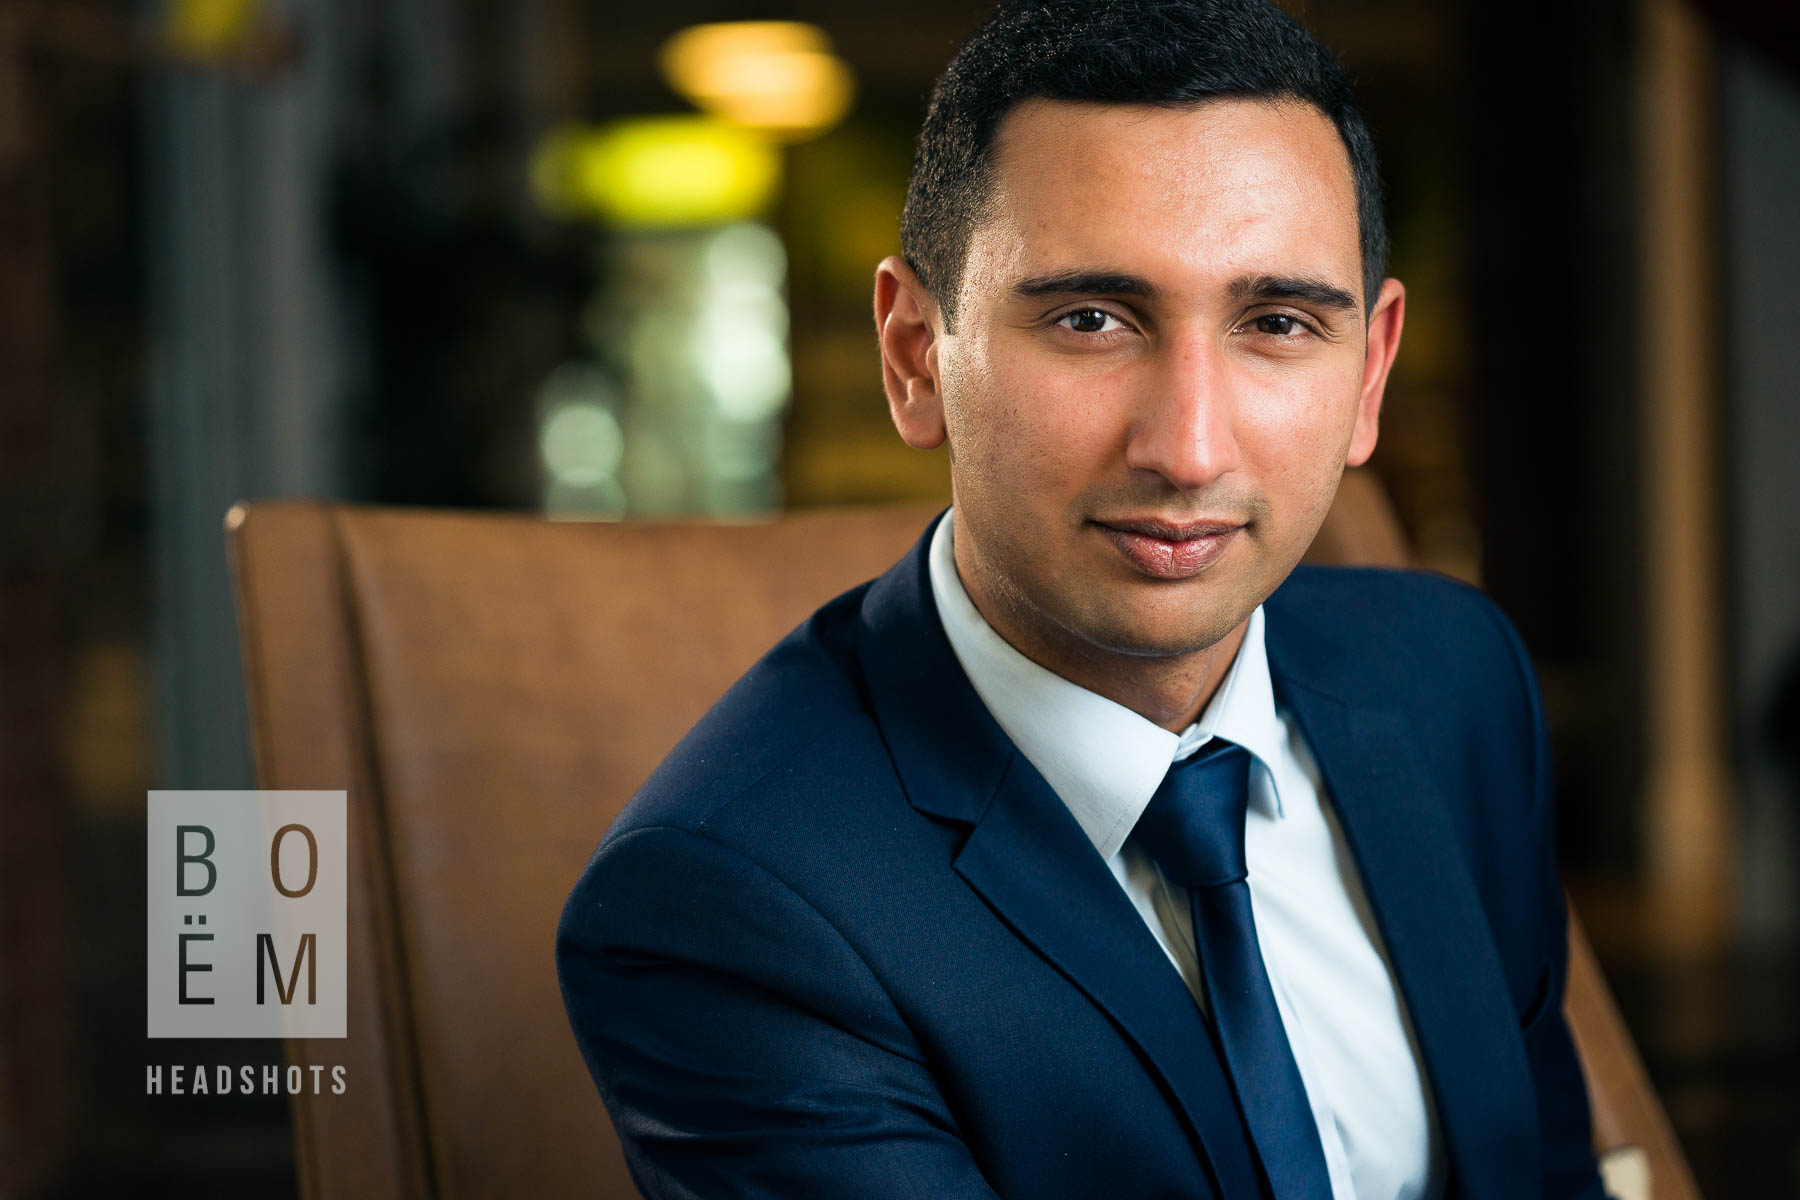 Here's a quick look at Waleed's brand new Executive Headshots in Adelaide. We spent an hour shooting these stunning executive portraits. More to come.